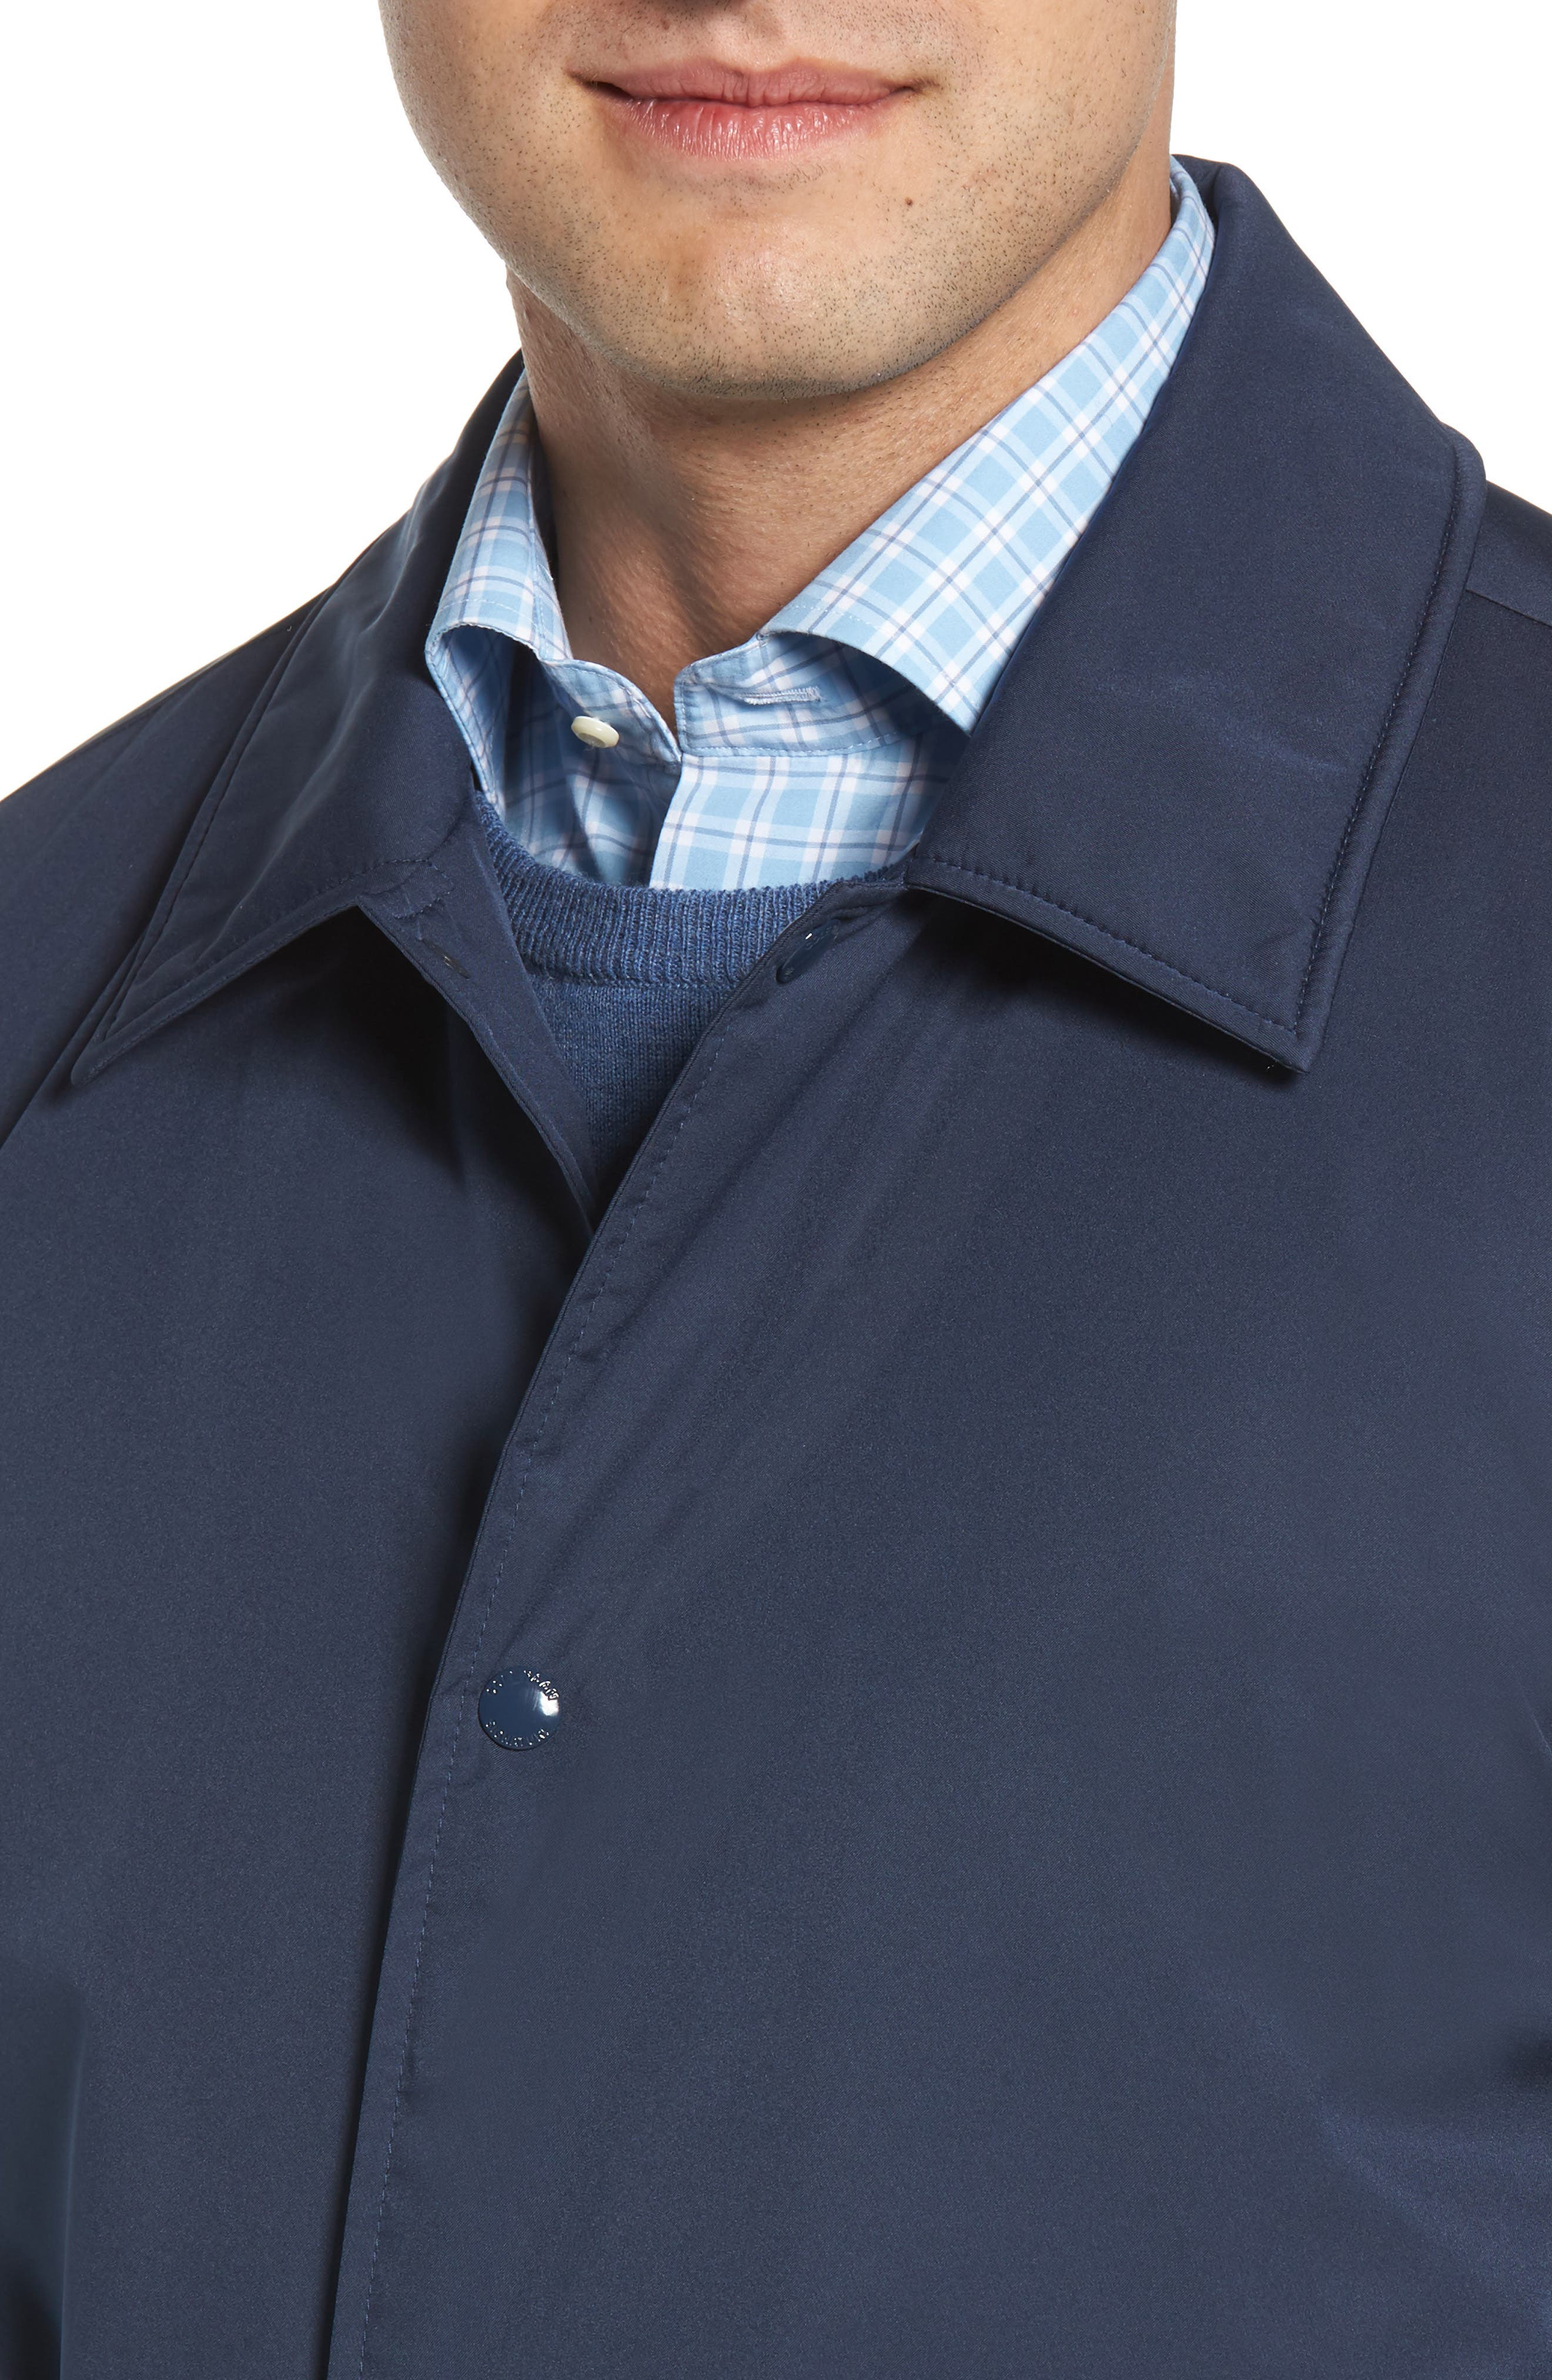 Faux Shearling Lined Jacket,                             Alternate thumbnail 4, color,                             INDIA INK